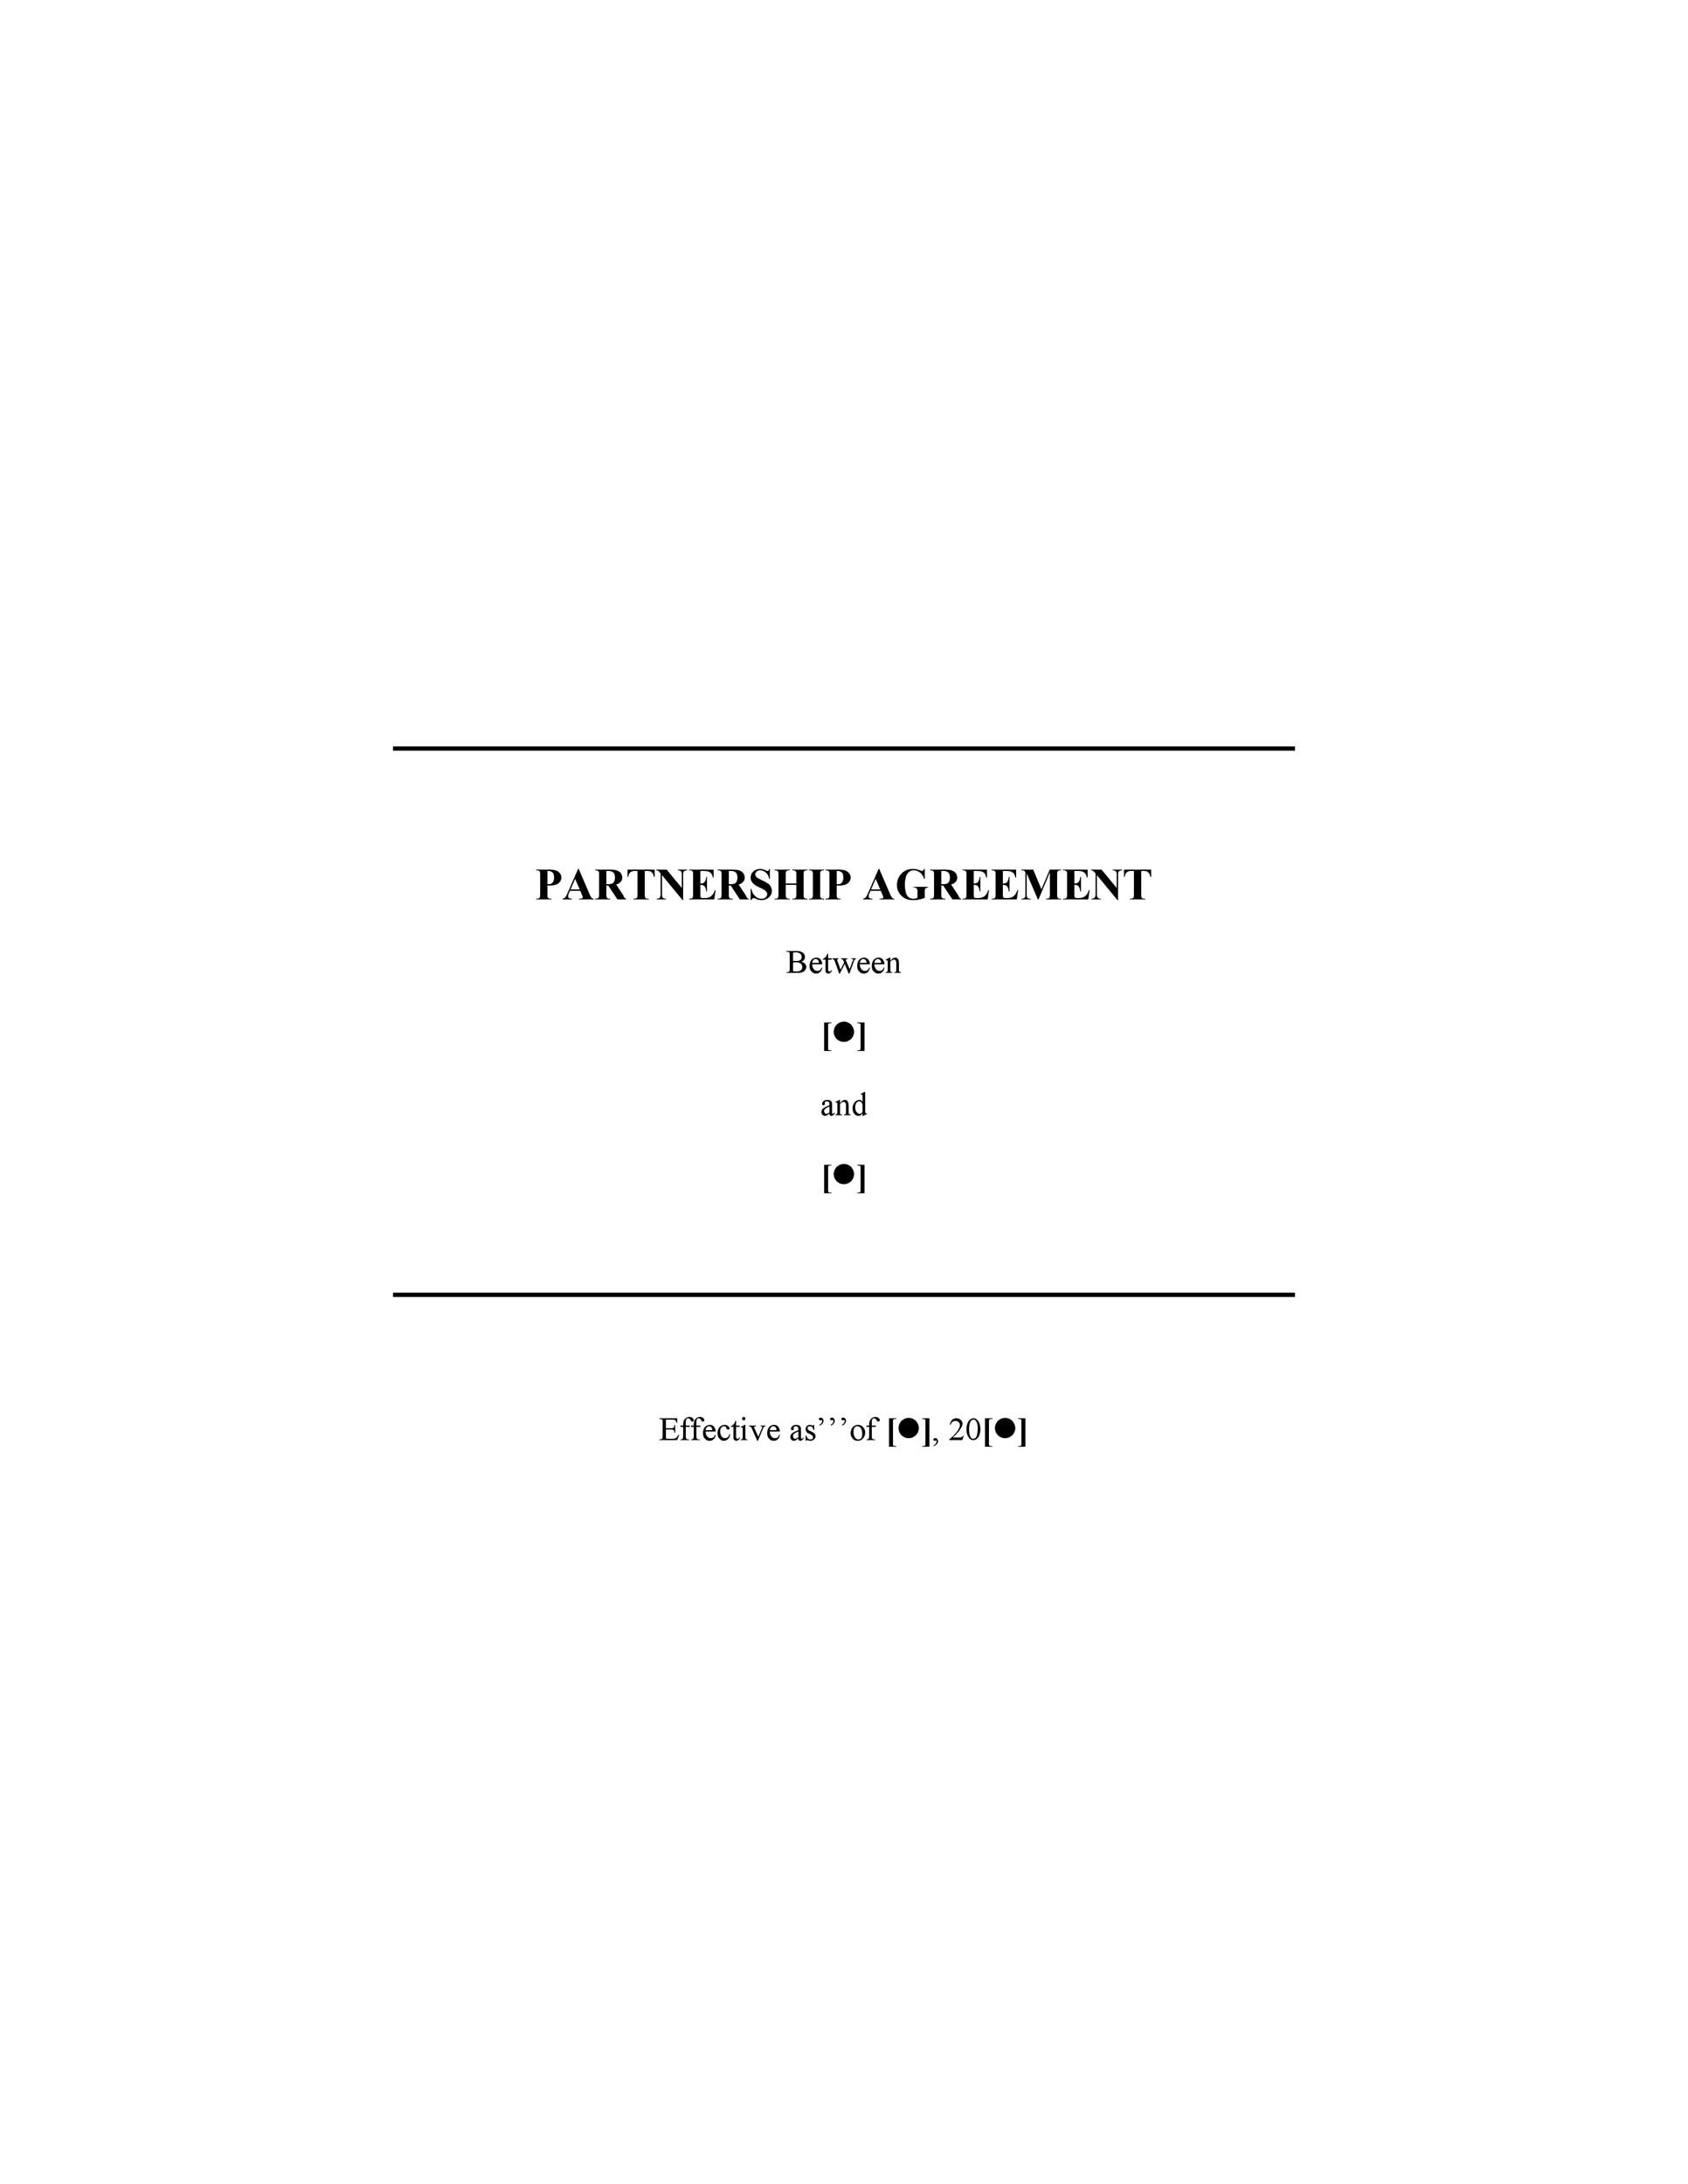 40+ FREE Partnership Agreement Templates (Business, General) - Free Partnership Agreement Form